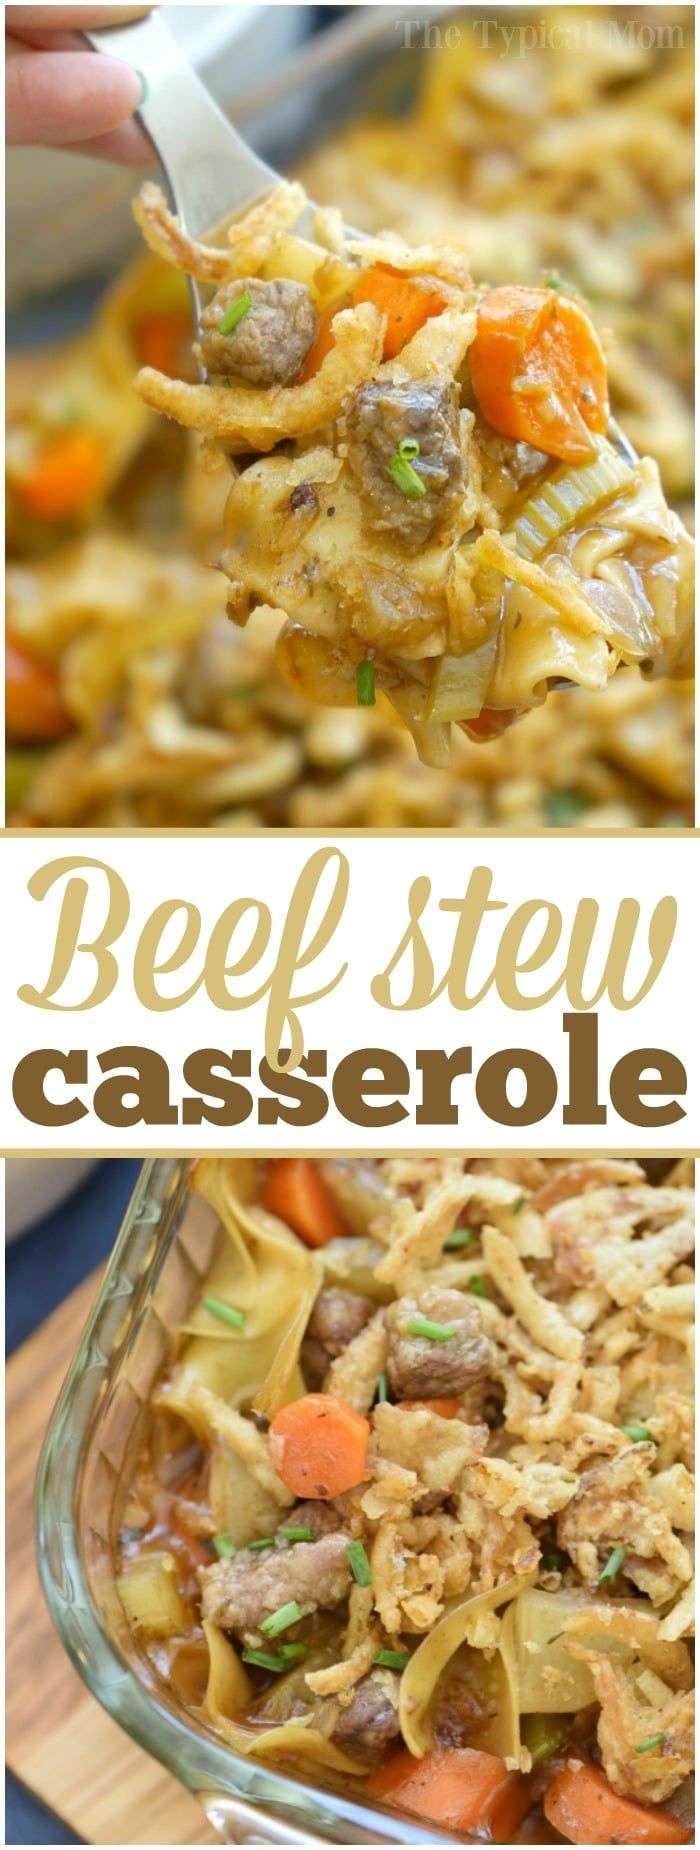 This Easy Beef Stew Casserole Is Comfort Food At It S Finest Packed With Tender